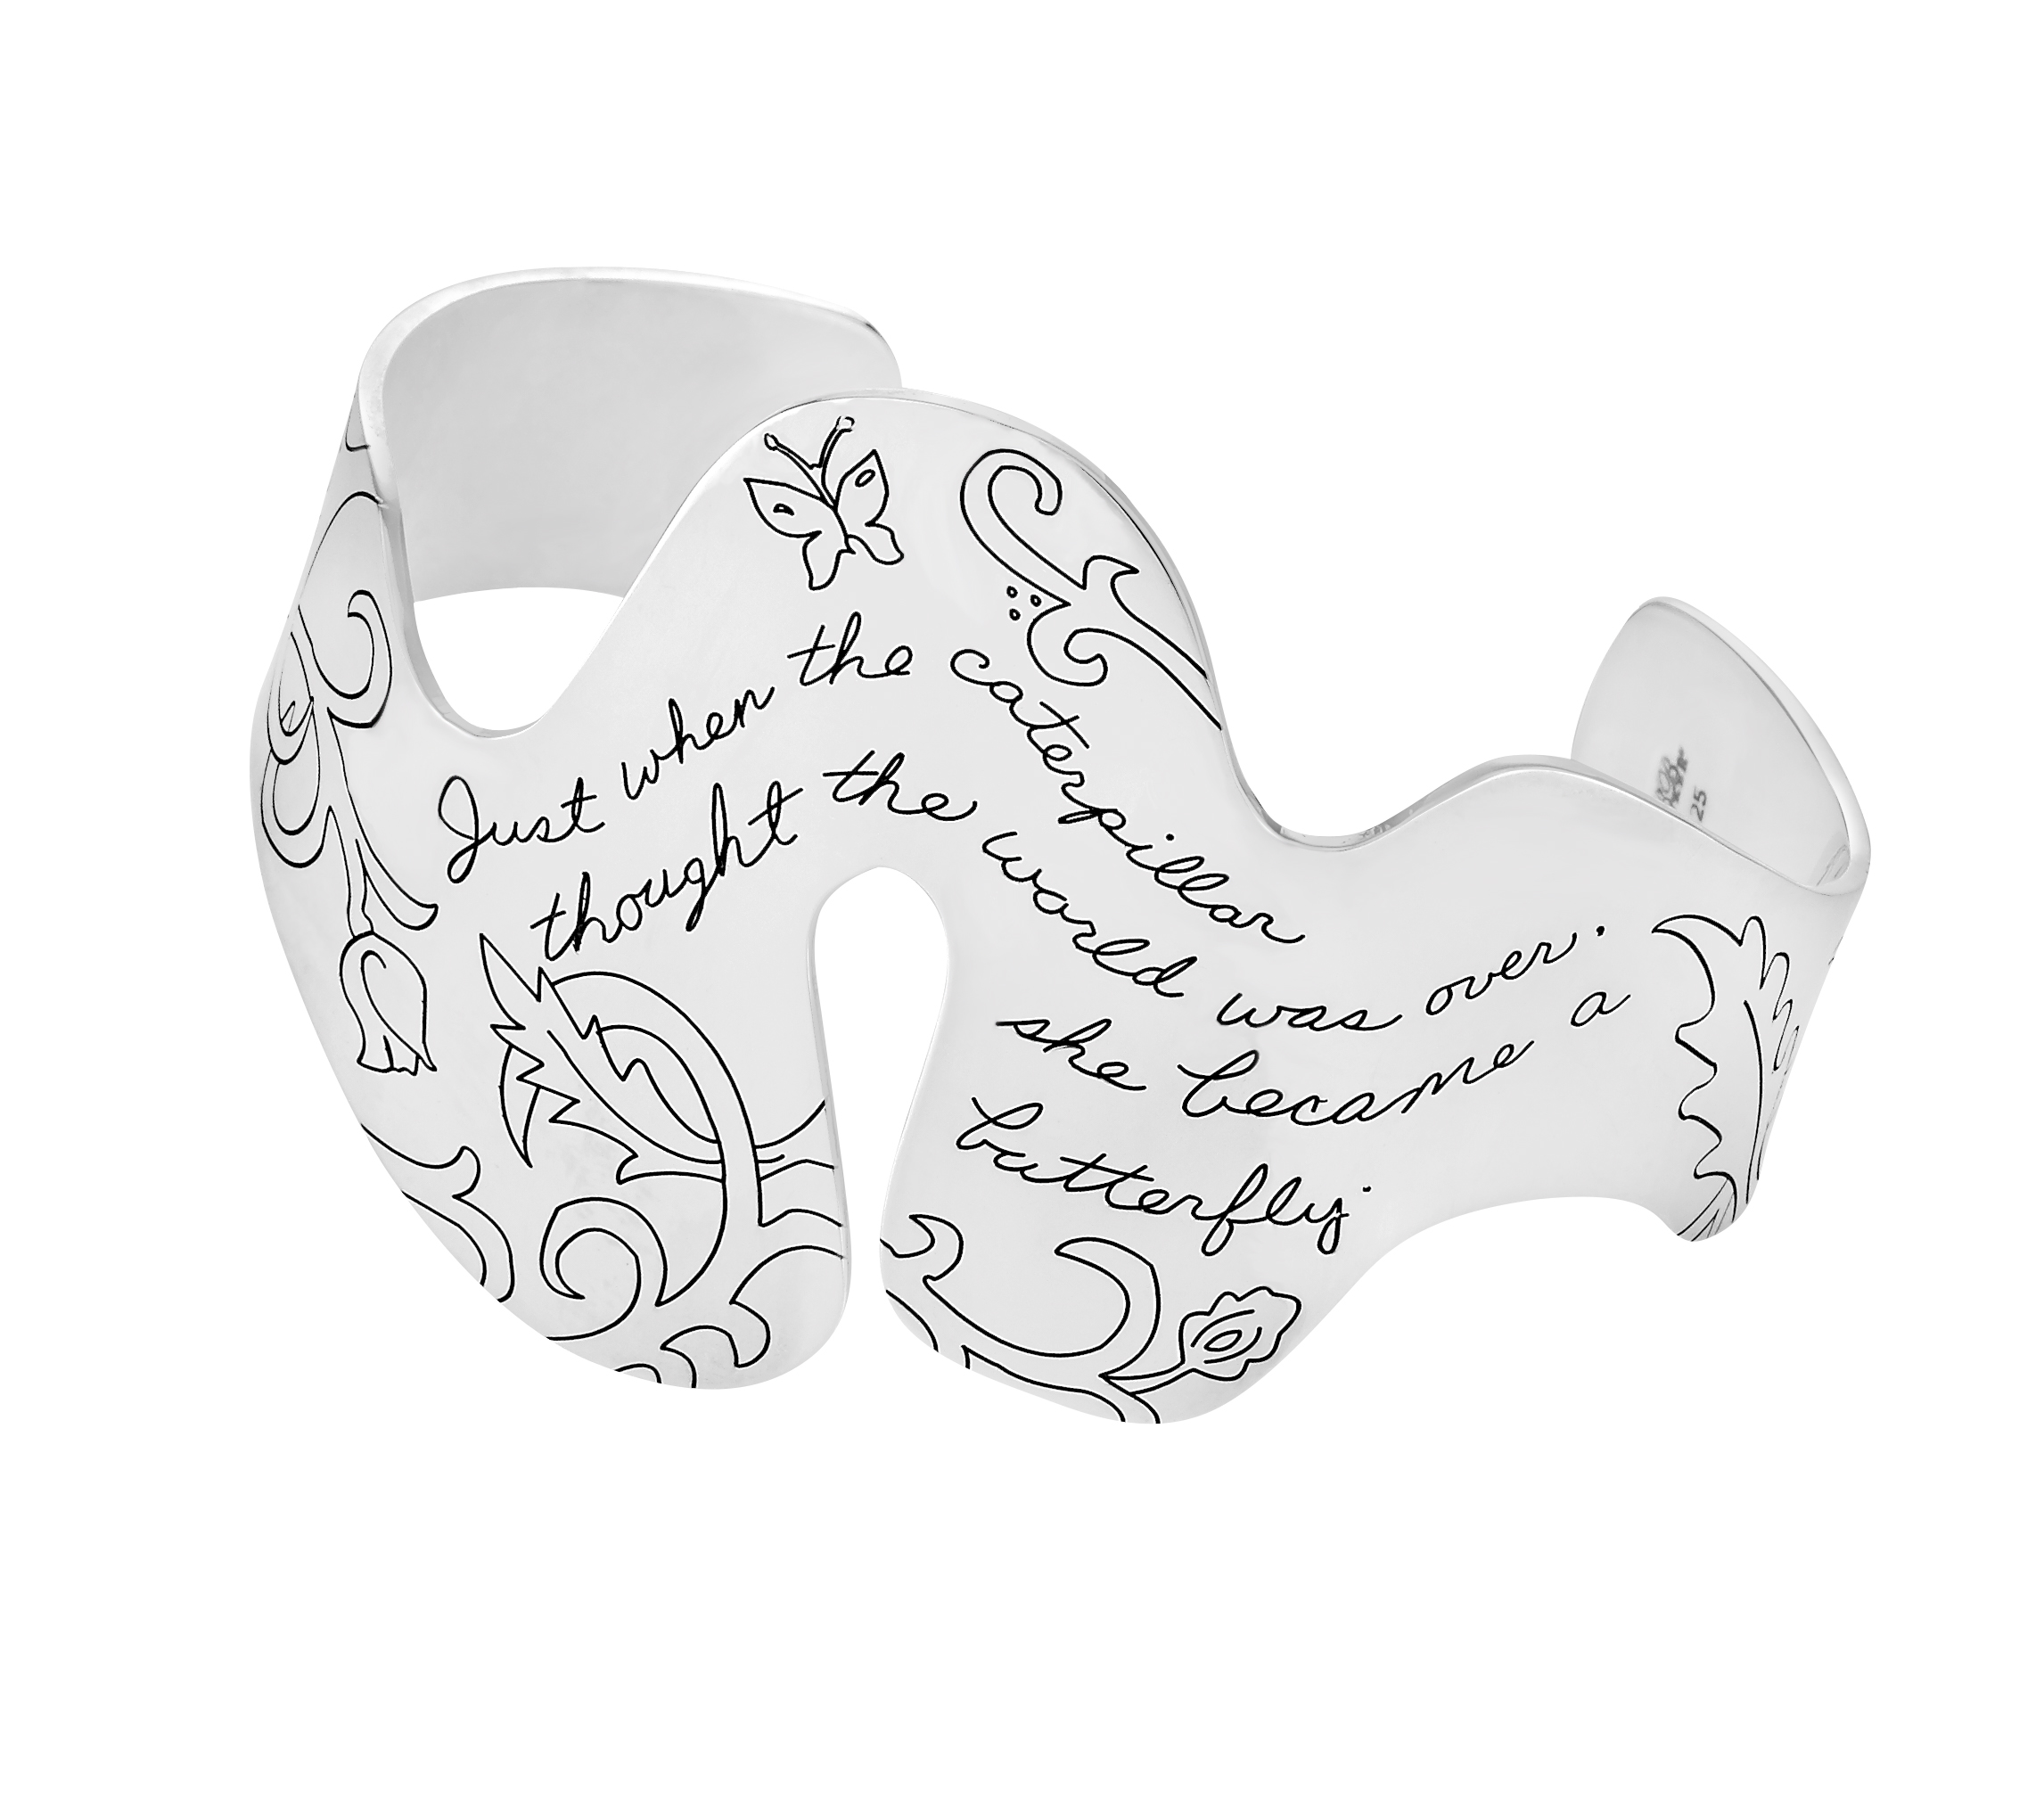 """Engraved floral motif adorns substantial sterling cuff with several uniquely shaped curves suggesting the flow of change.  """"Just when the caterpillar thought the world was over, she became a butterfly."""""""